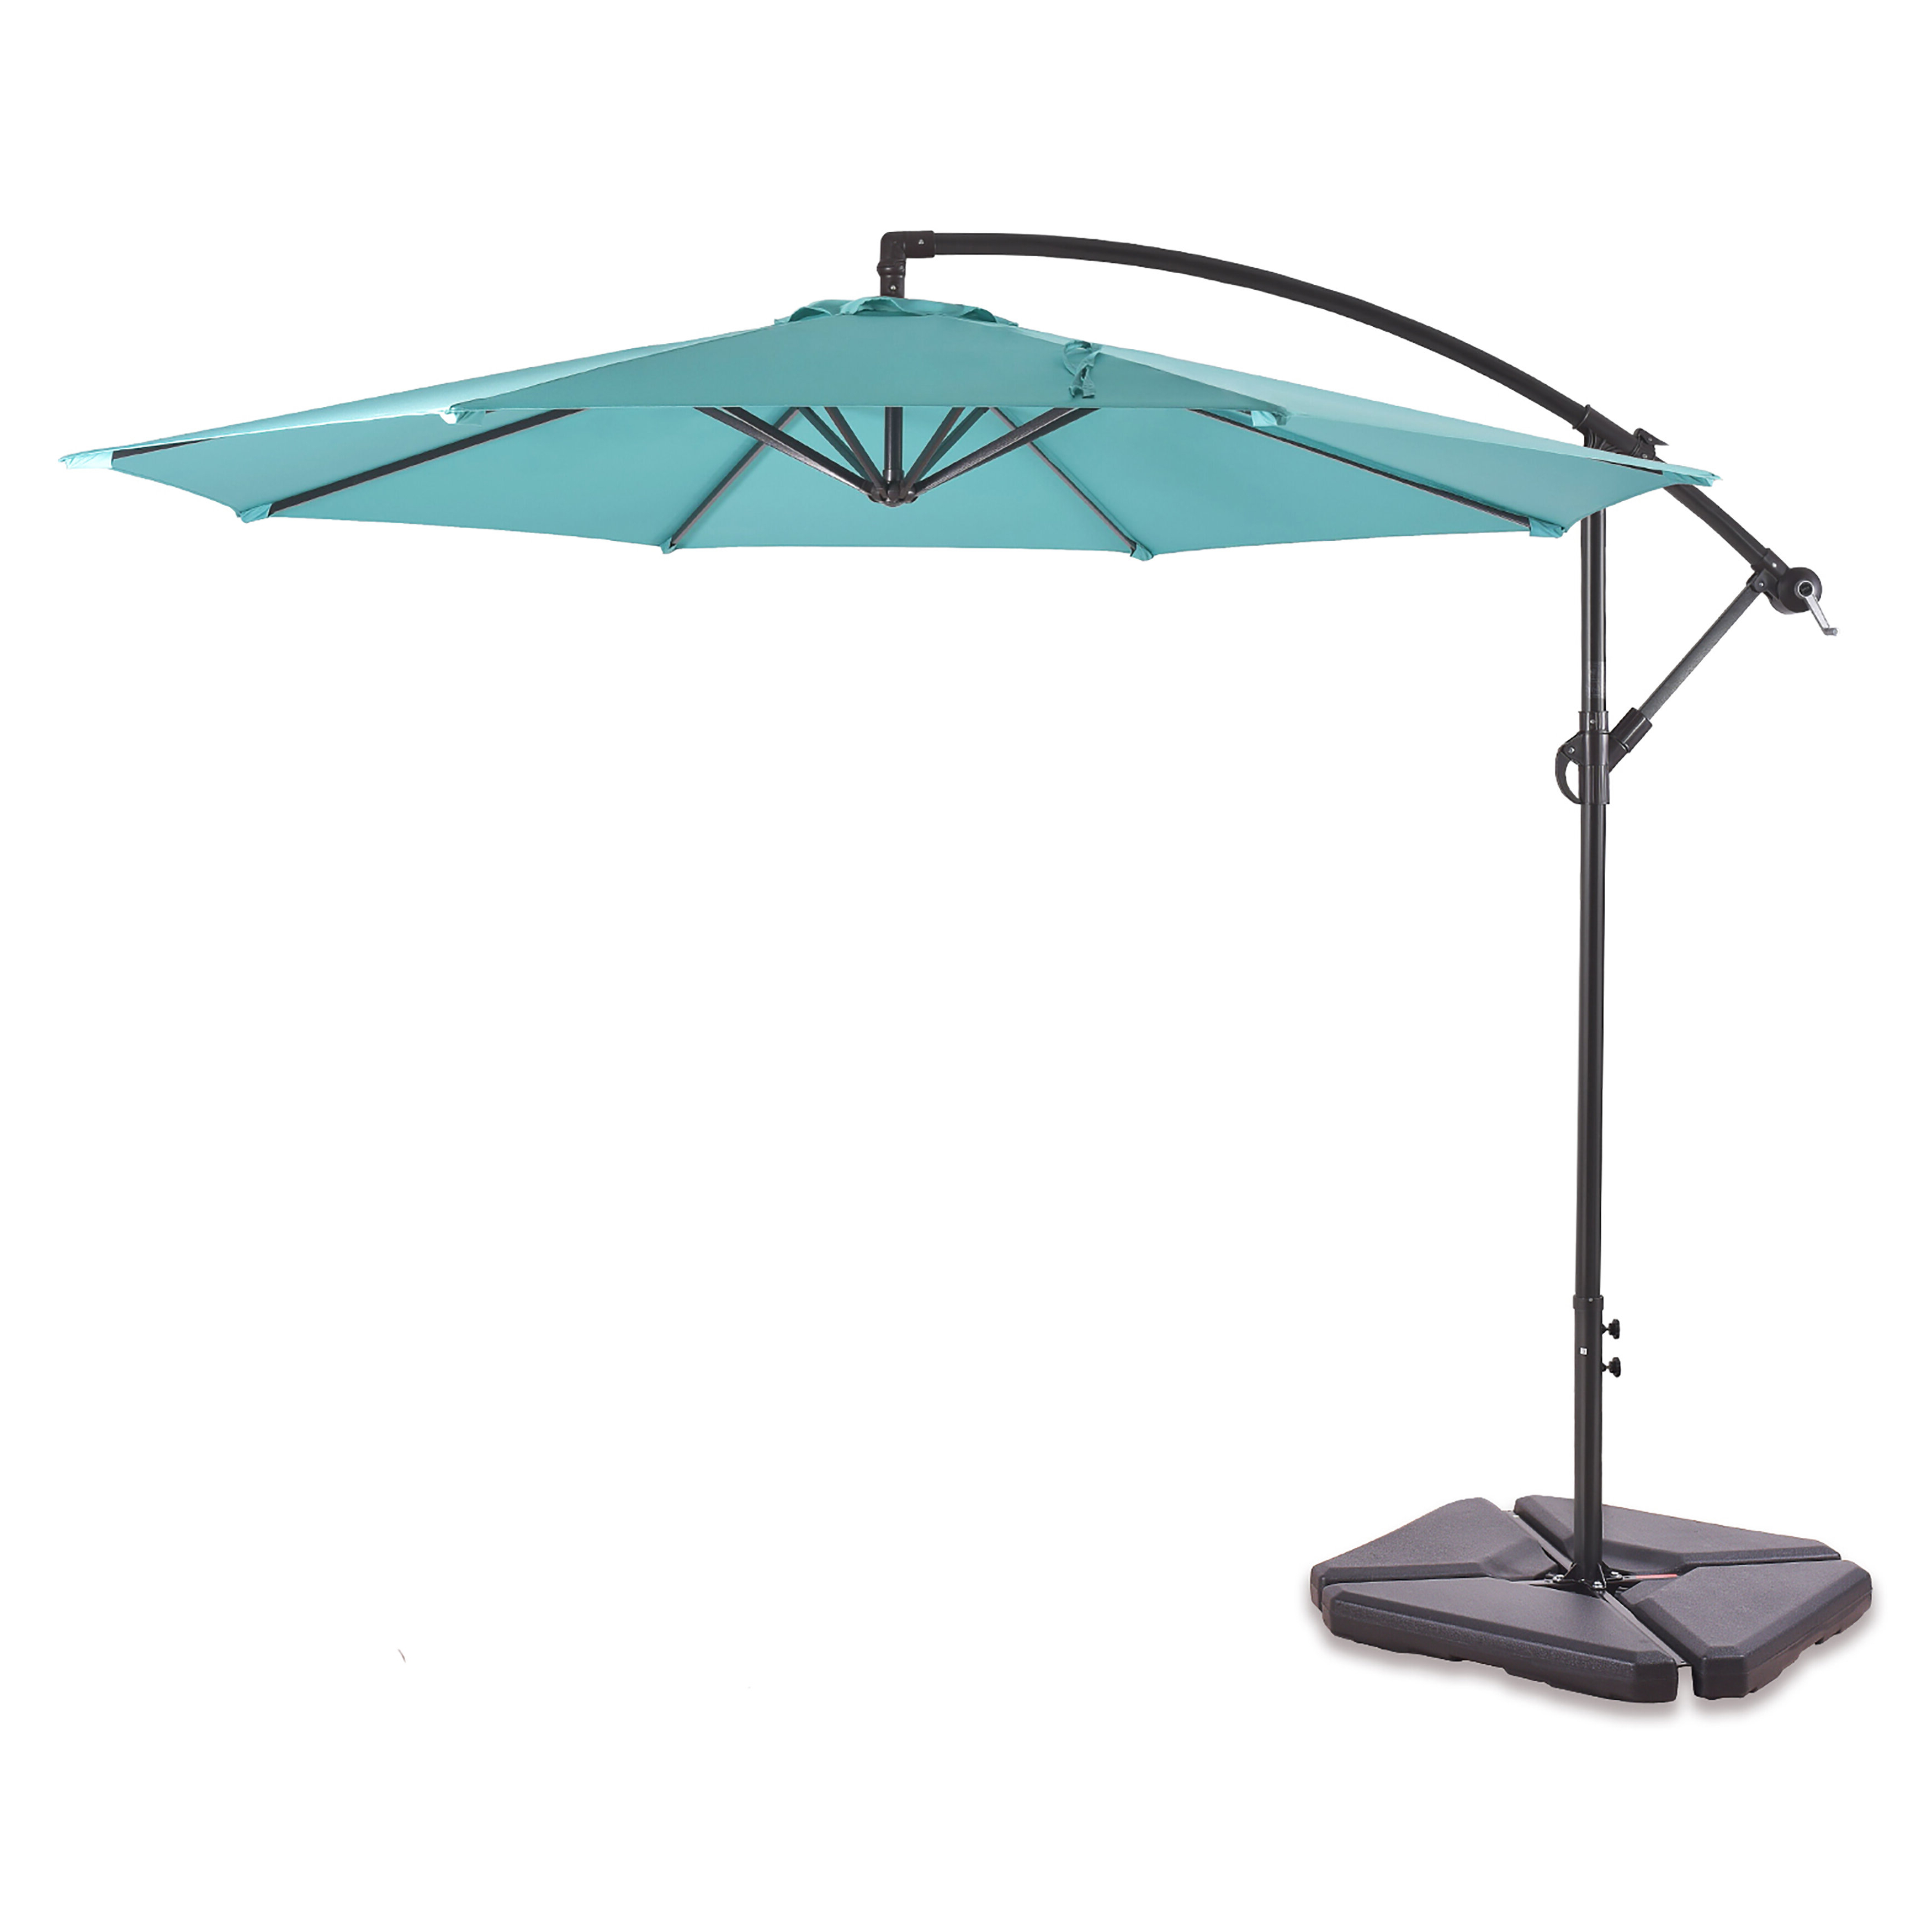 Most Up To Date Muhammad Fullerton Cantilever Umbrellas Pertaining To Karr 10' Cantilever Umbrella (View 8 of 20)